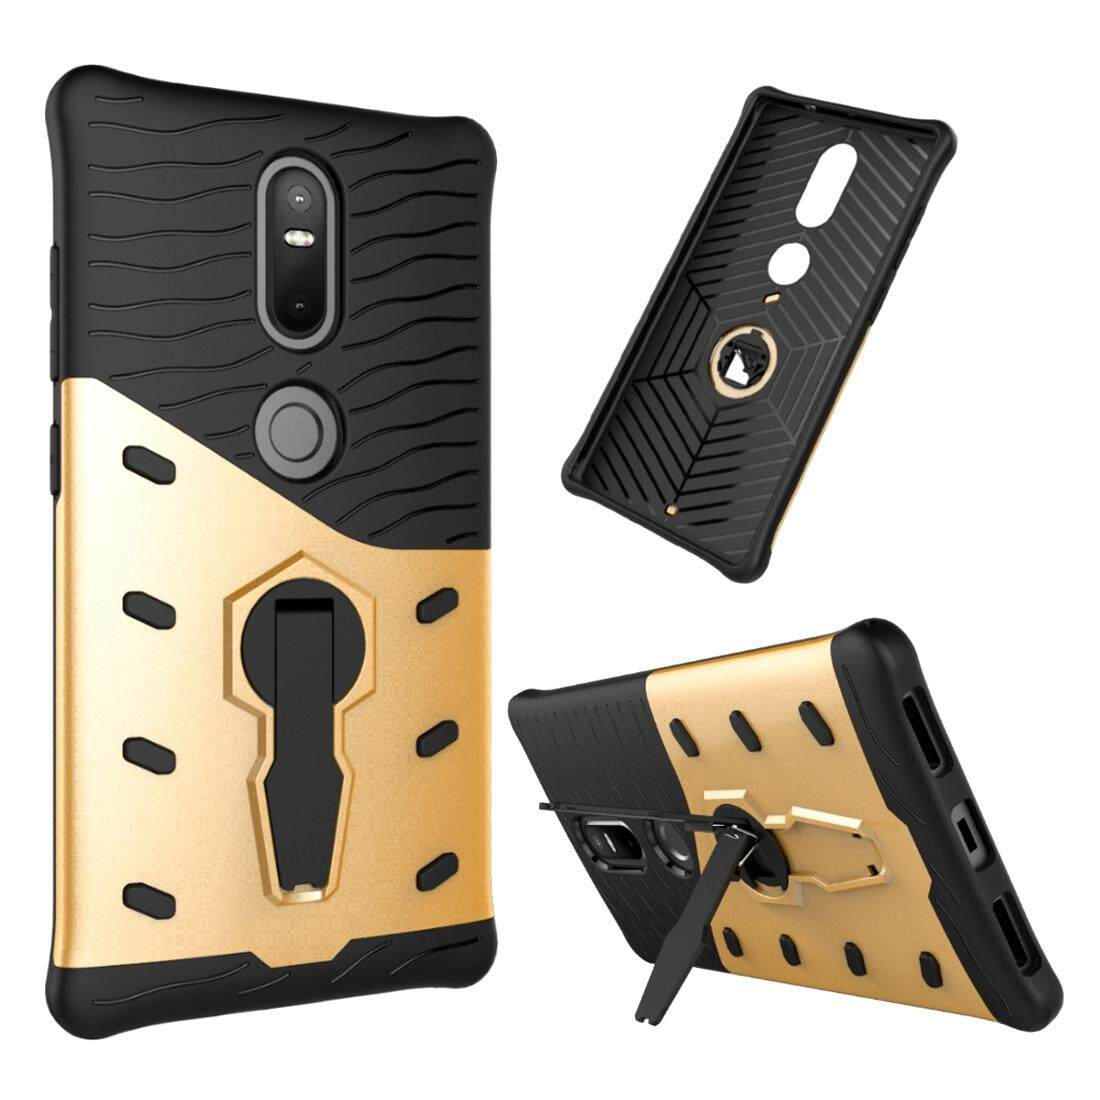 For Lenovo Phab2 Plus Shock-Resistant 360 Degree Spin Sniper Hybrid Case TPU + PC Combination Case with Holder(Gold) - intl